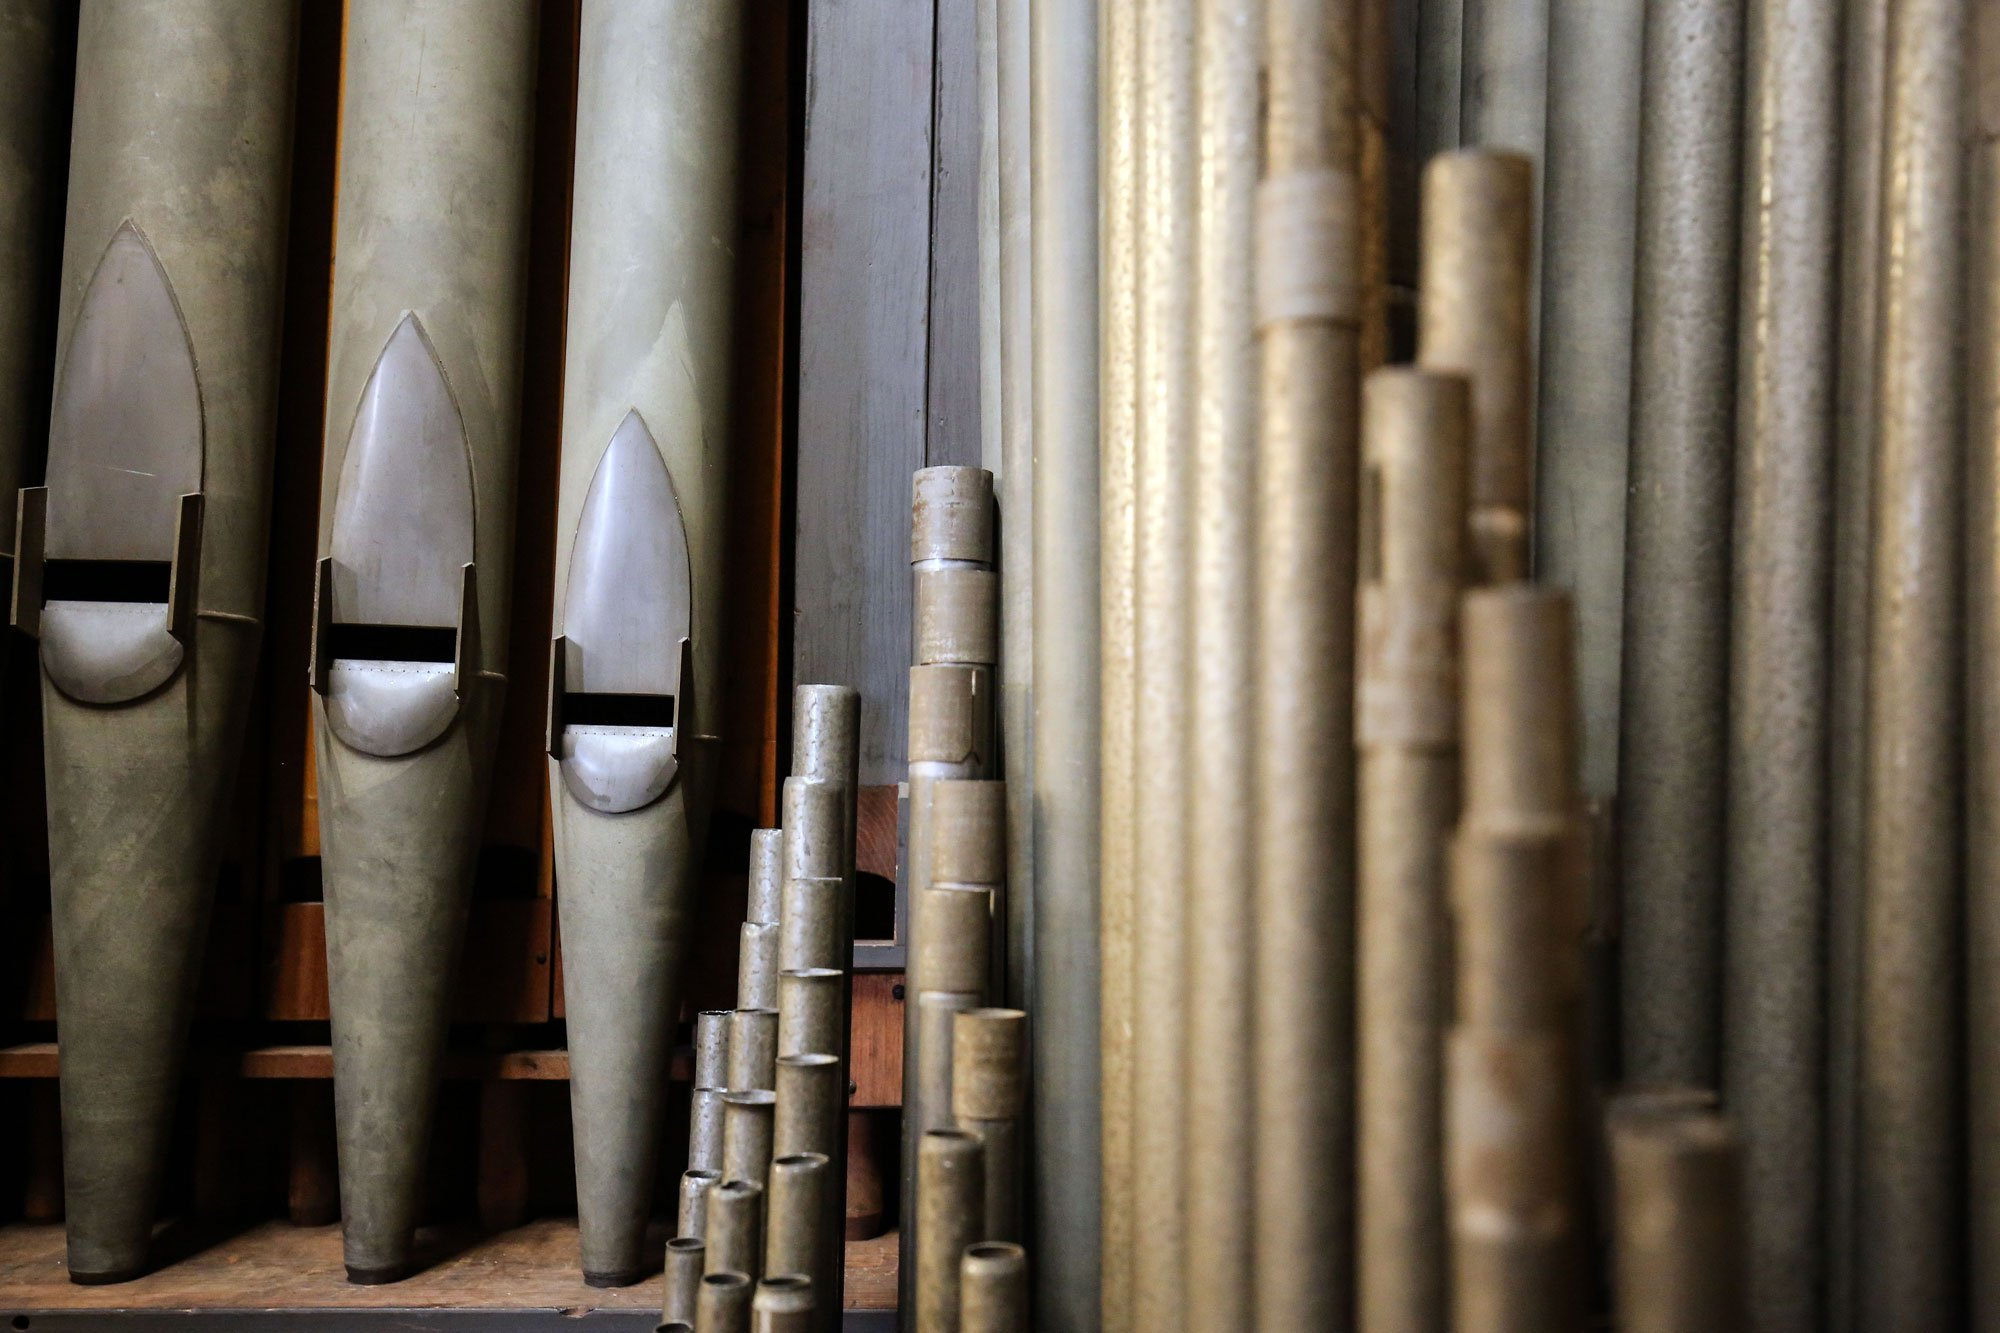 Metal Organ Pipes